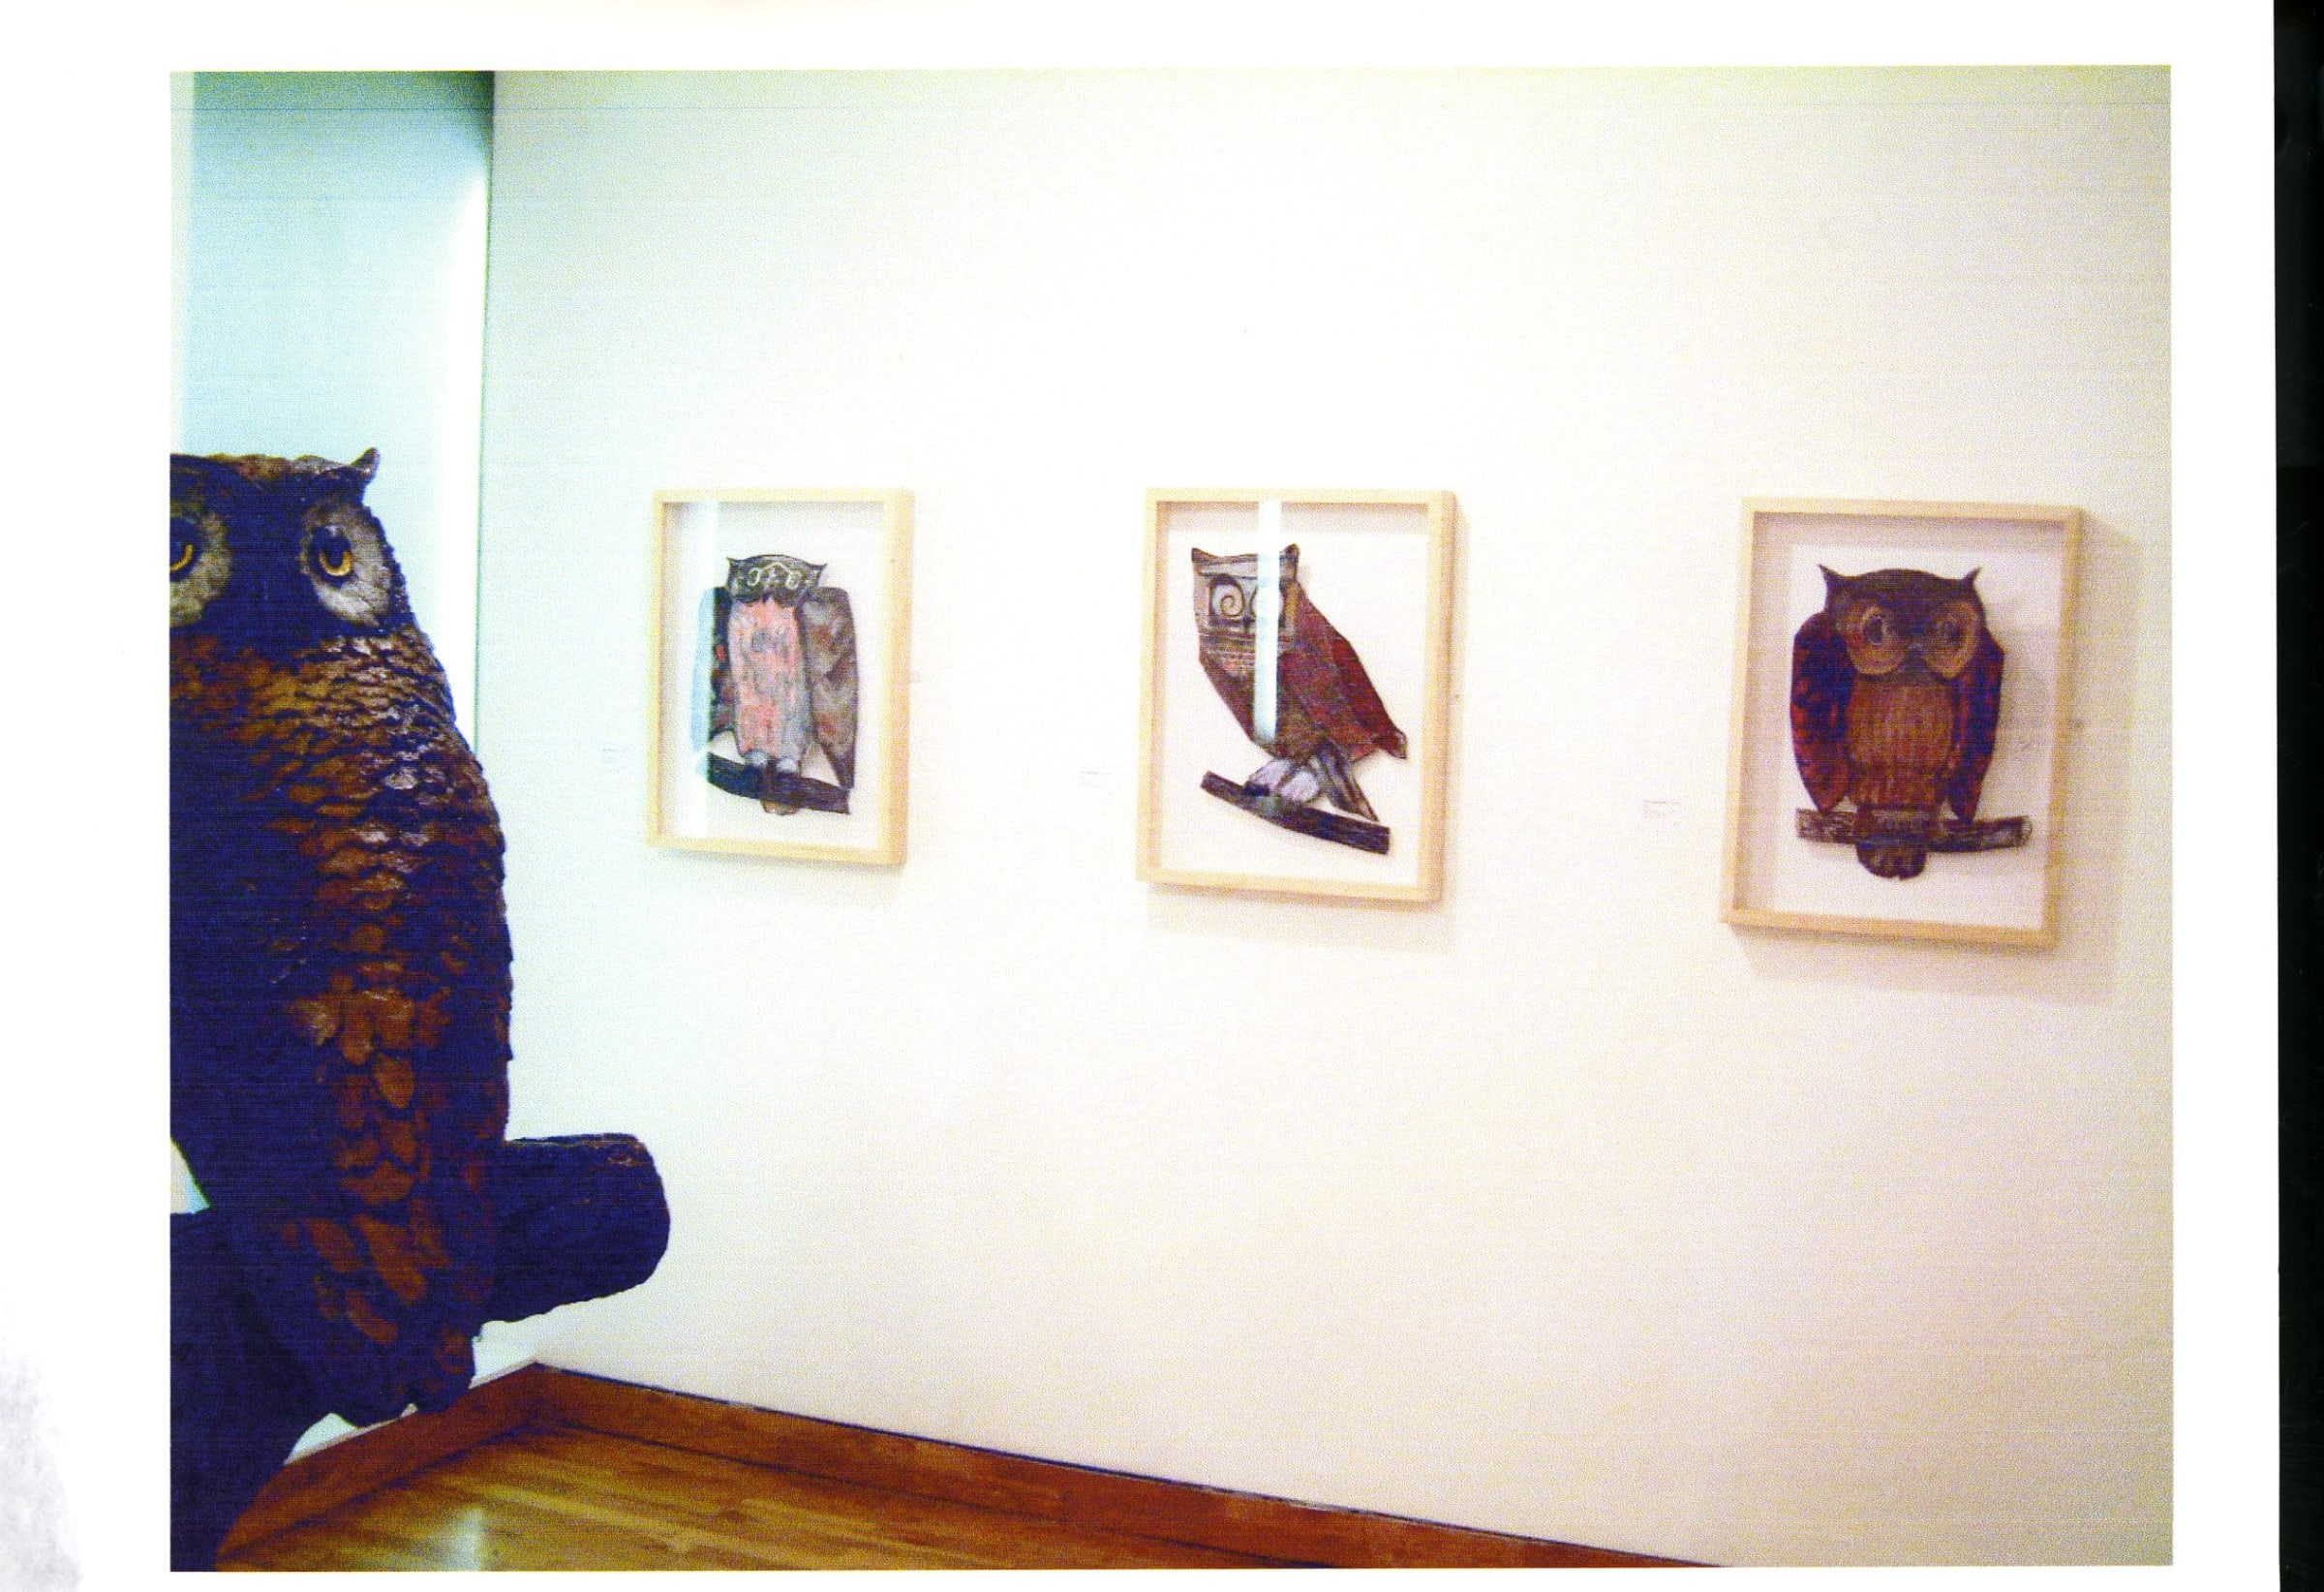 """<span class=""""link fancybox-details-link""""><a href=""""/exhibitions/118/works/image_standalone498/"""">View Detail Page</a></span><p>IVOR ABRAHAMS RA 